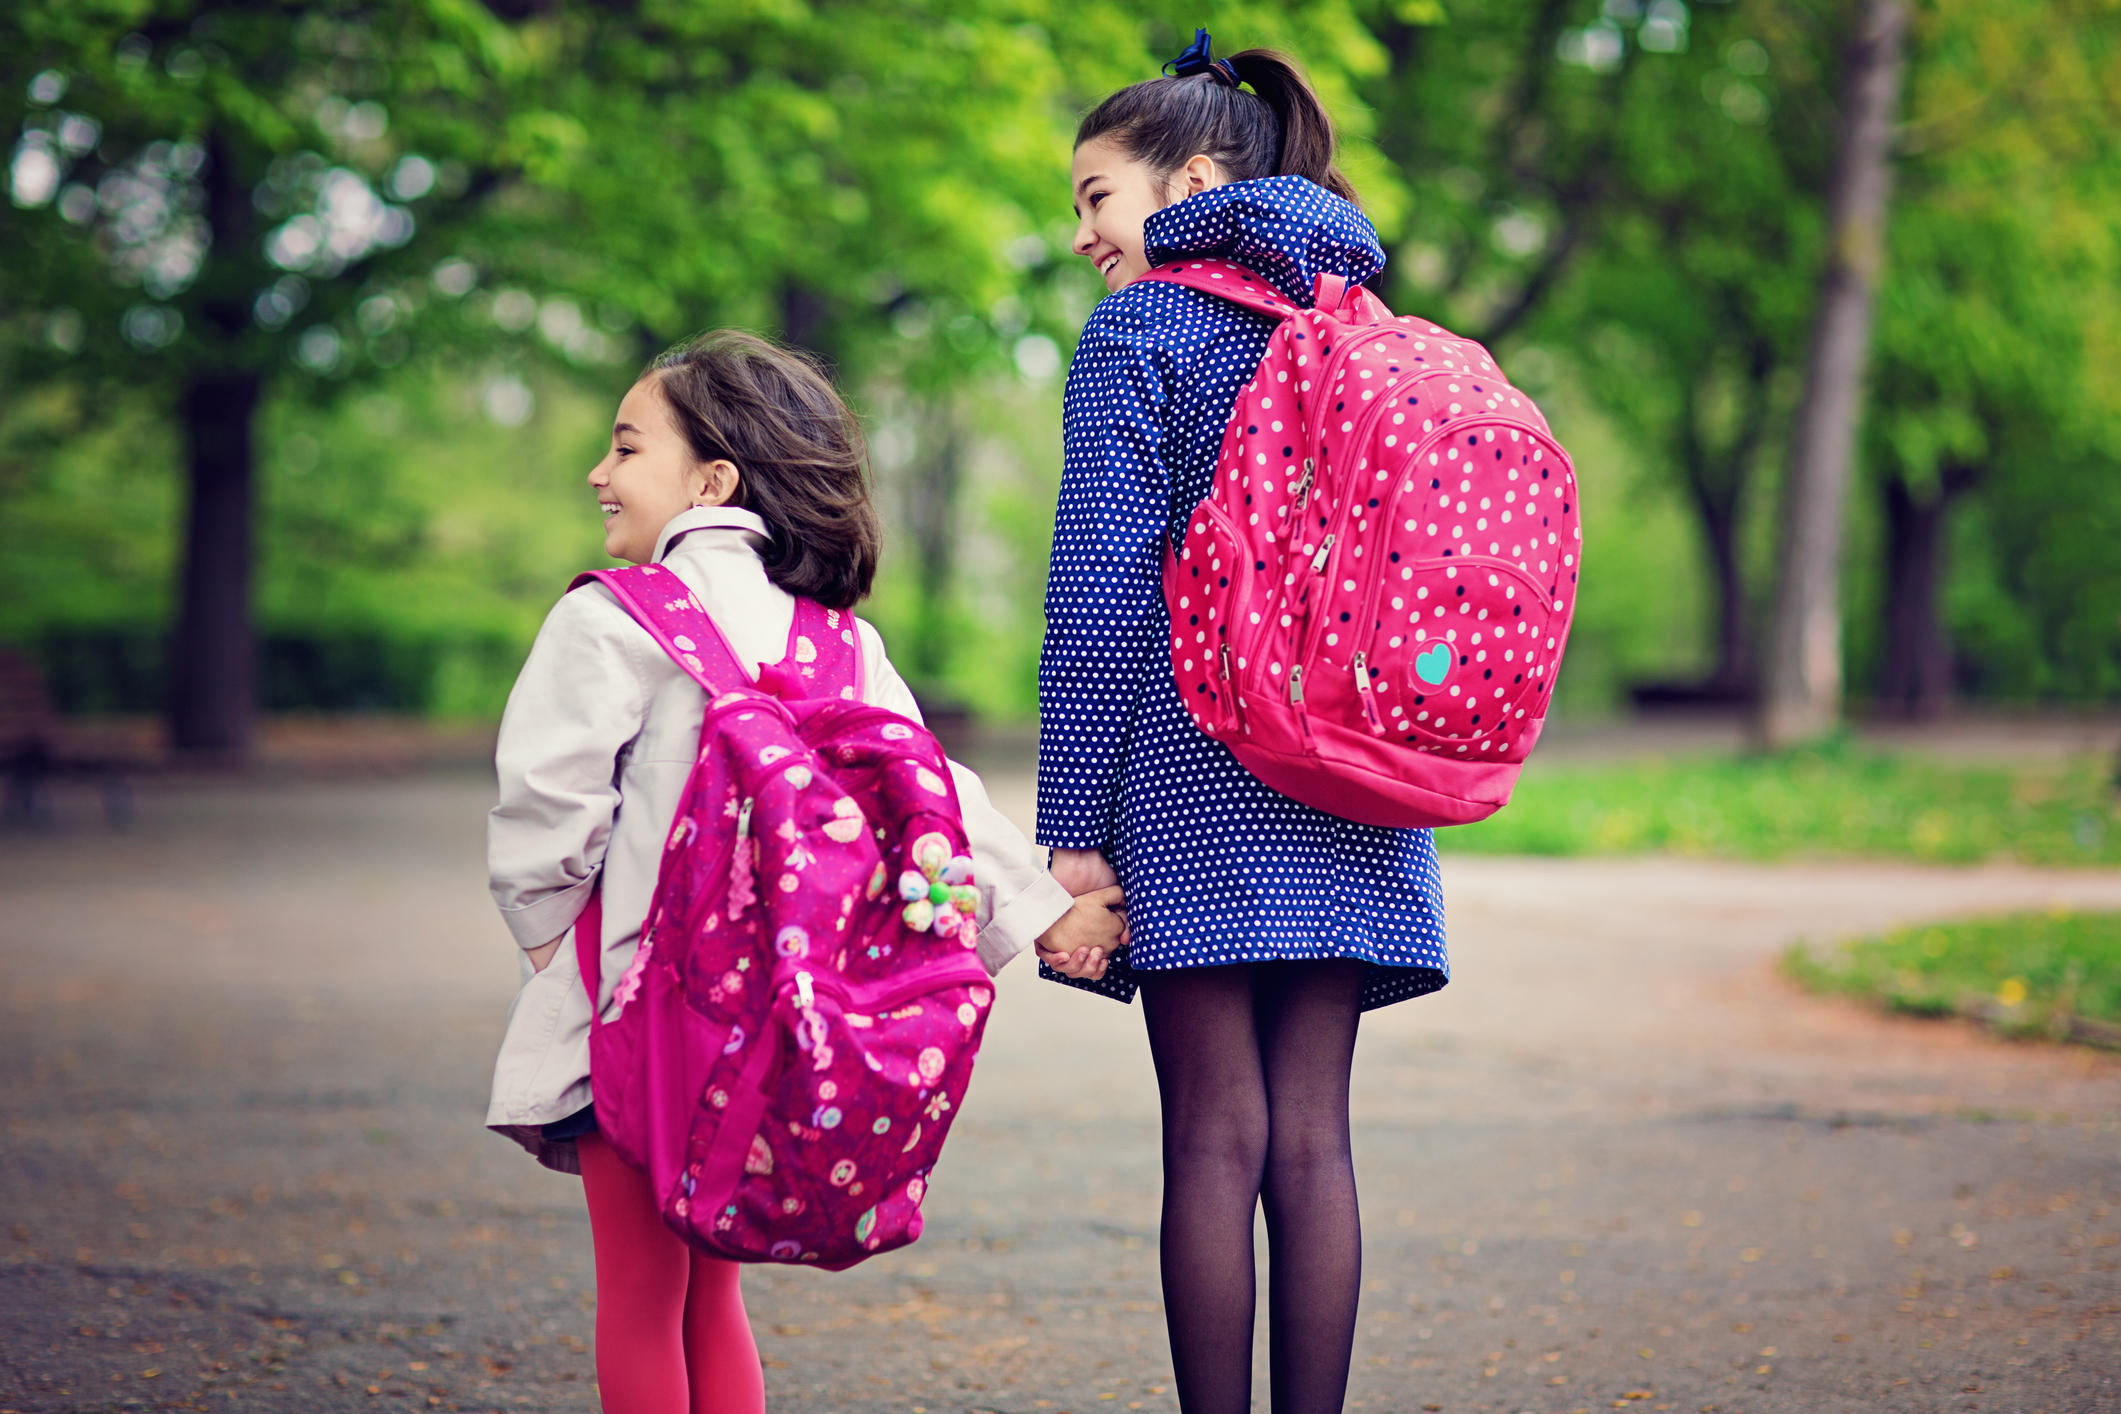 Two sisters are going to the school pass throught the local park.